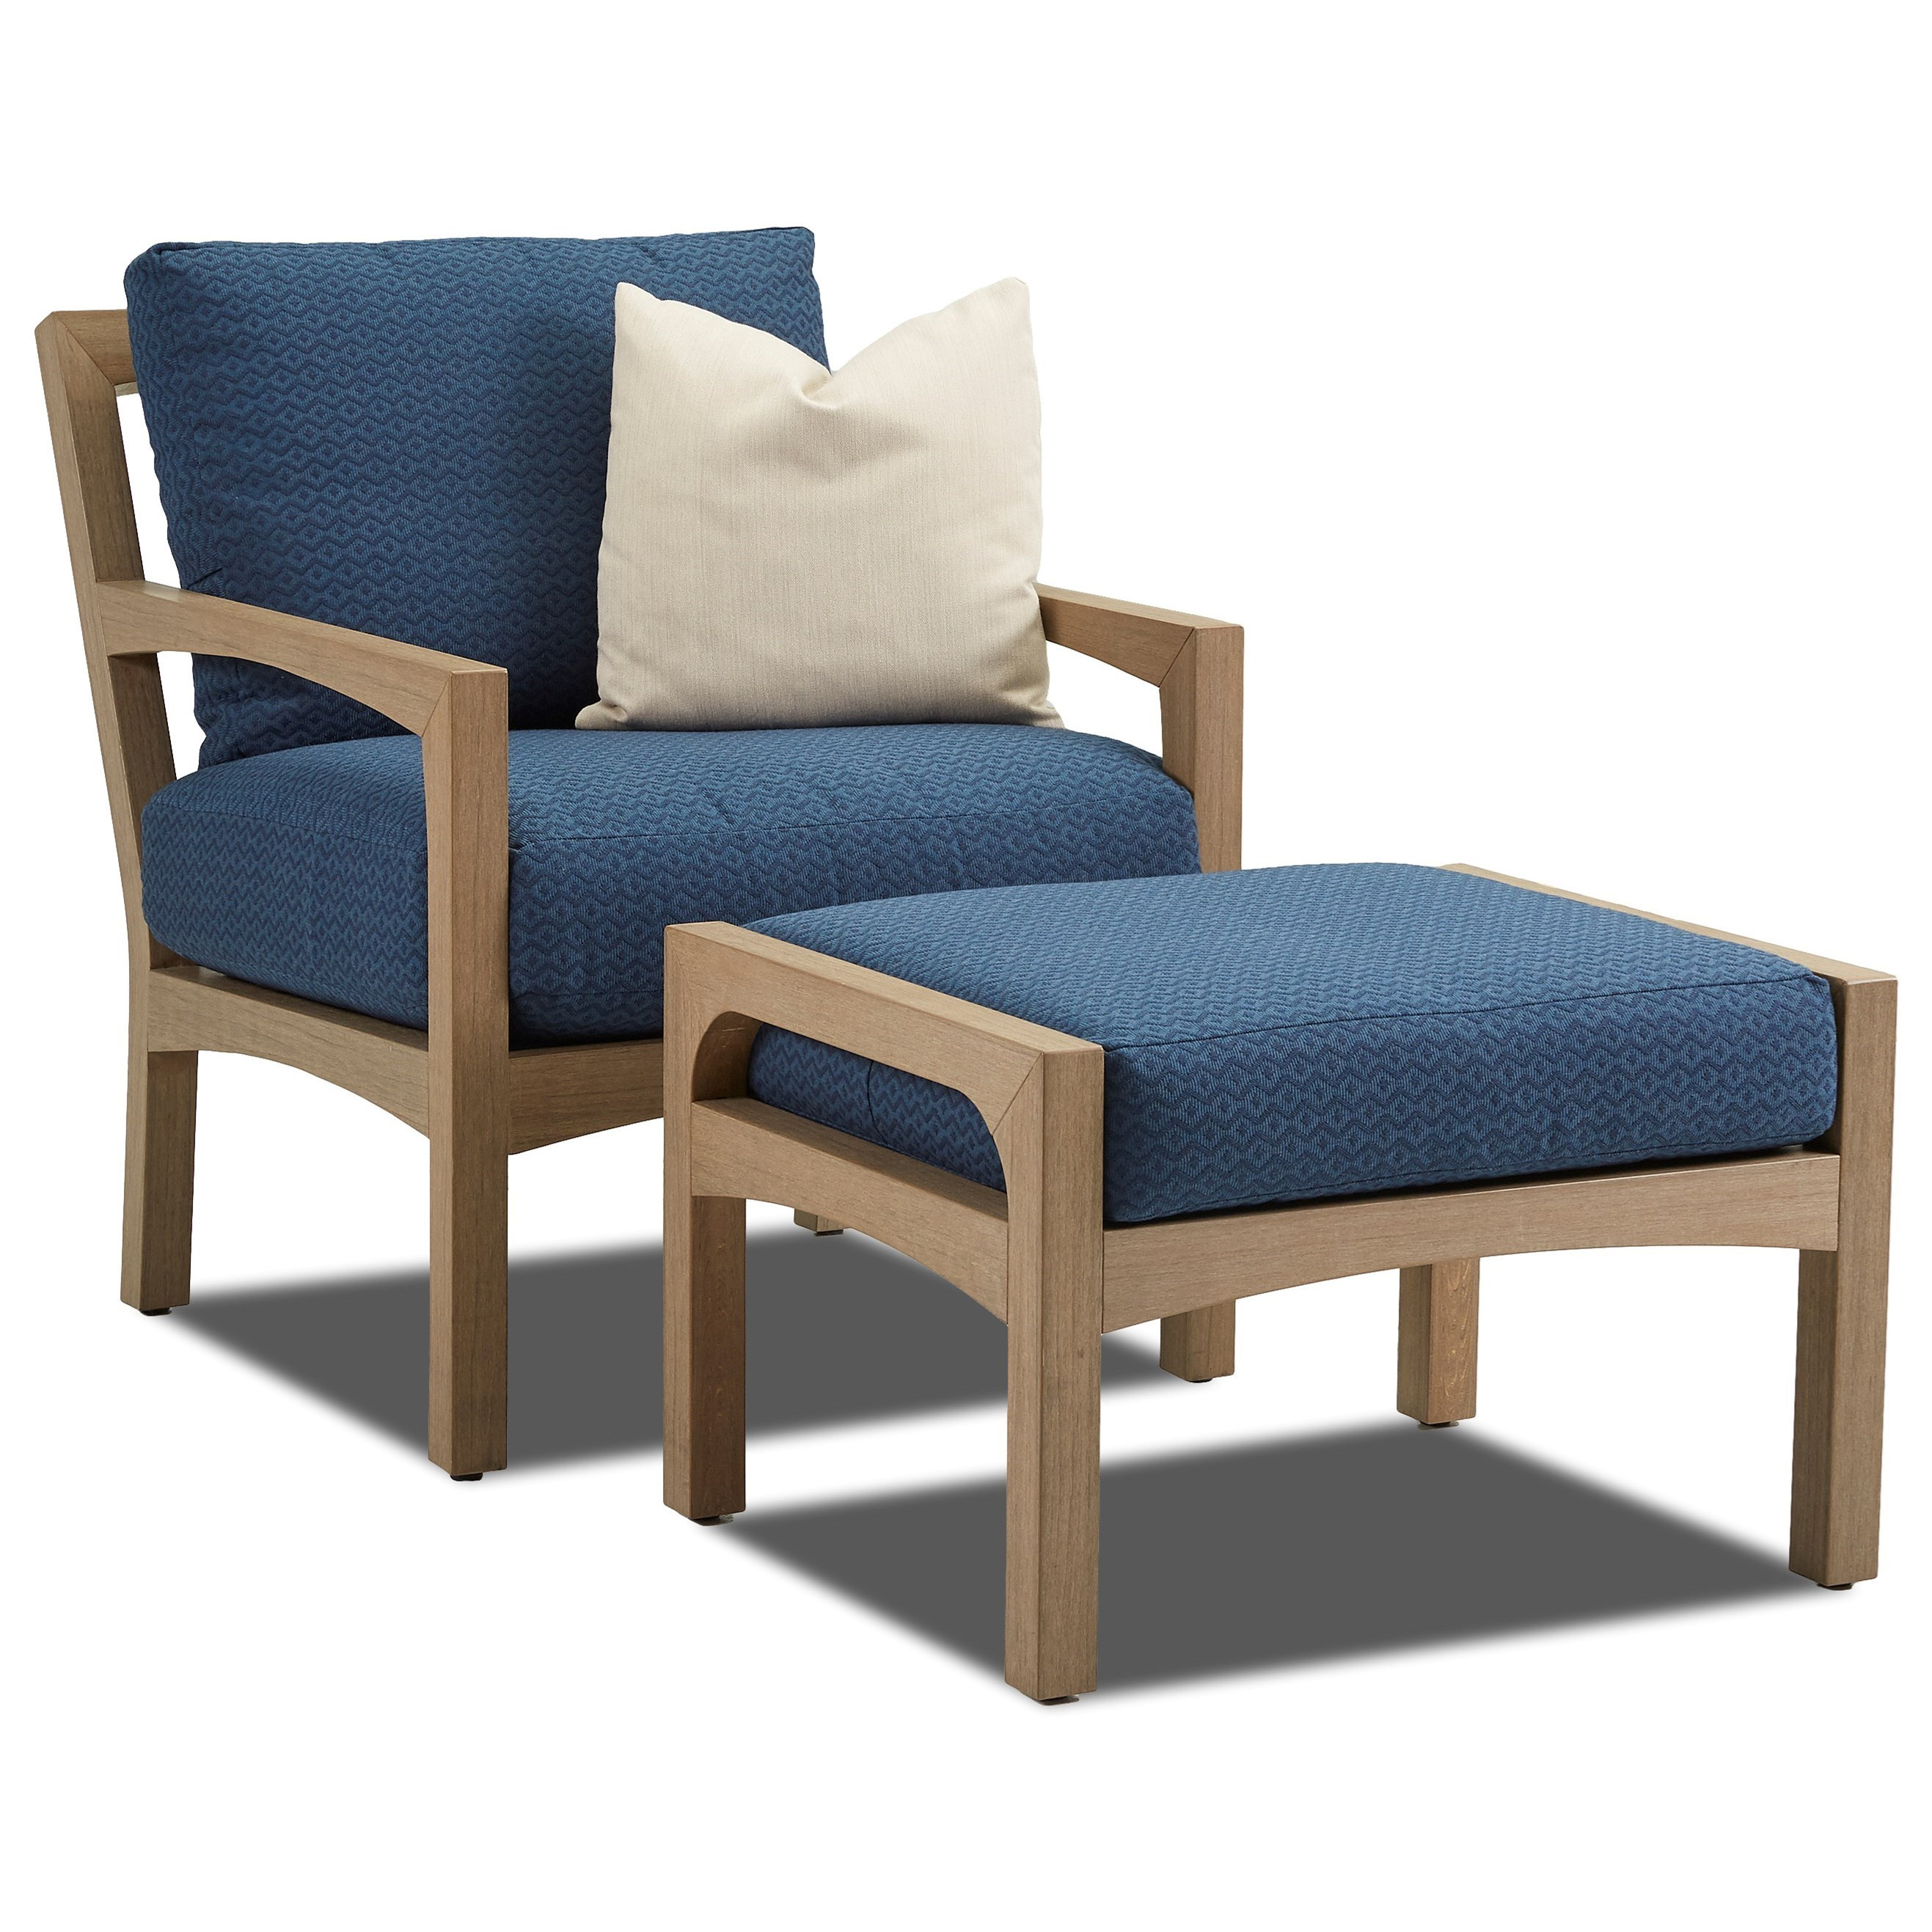 Klaussner Outdoor DelrayOutdoor Chair and Ottoman ...  sc 1 st  Hudsonu0027s Furniture : outdoor chair and ottoman set - Cheerinfomania.Com